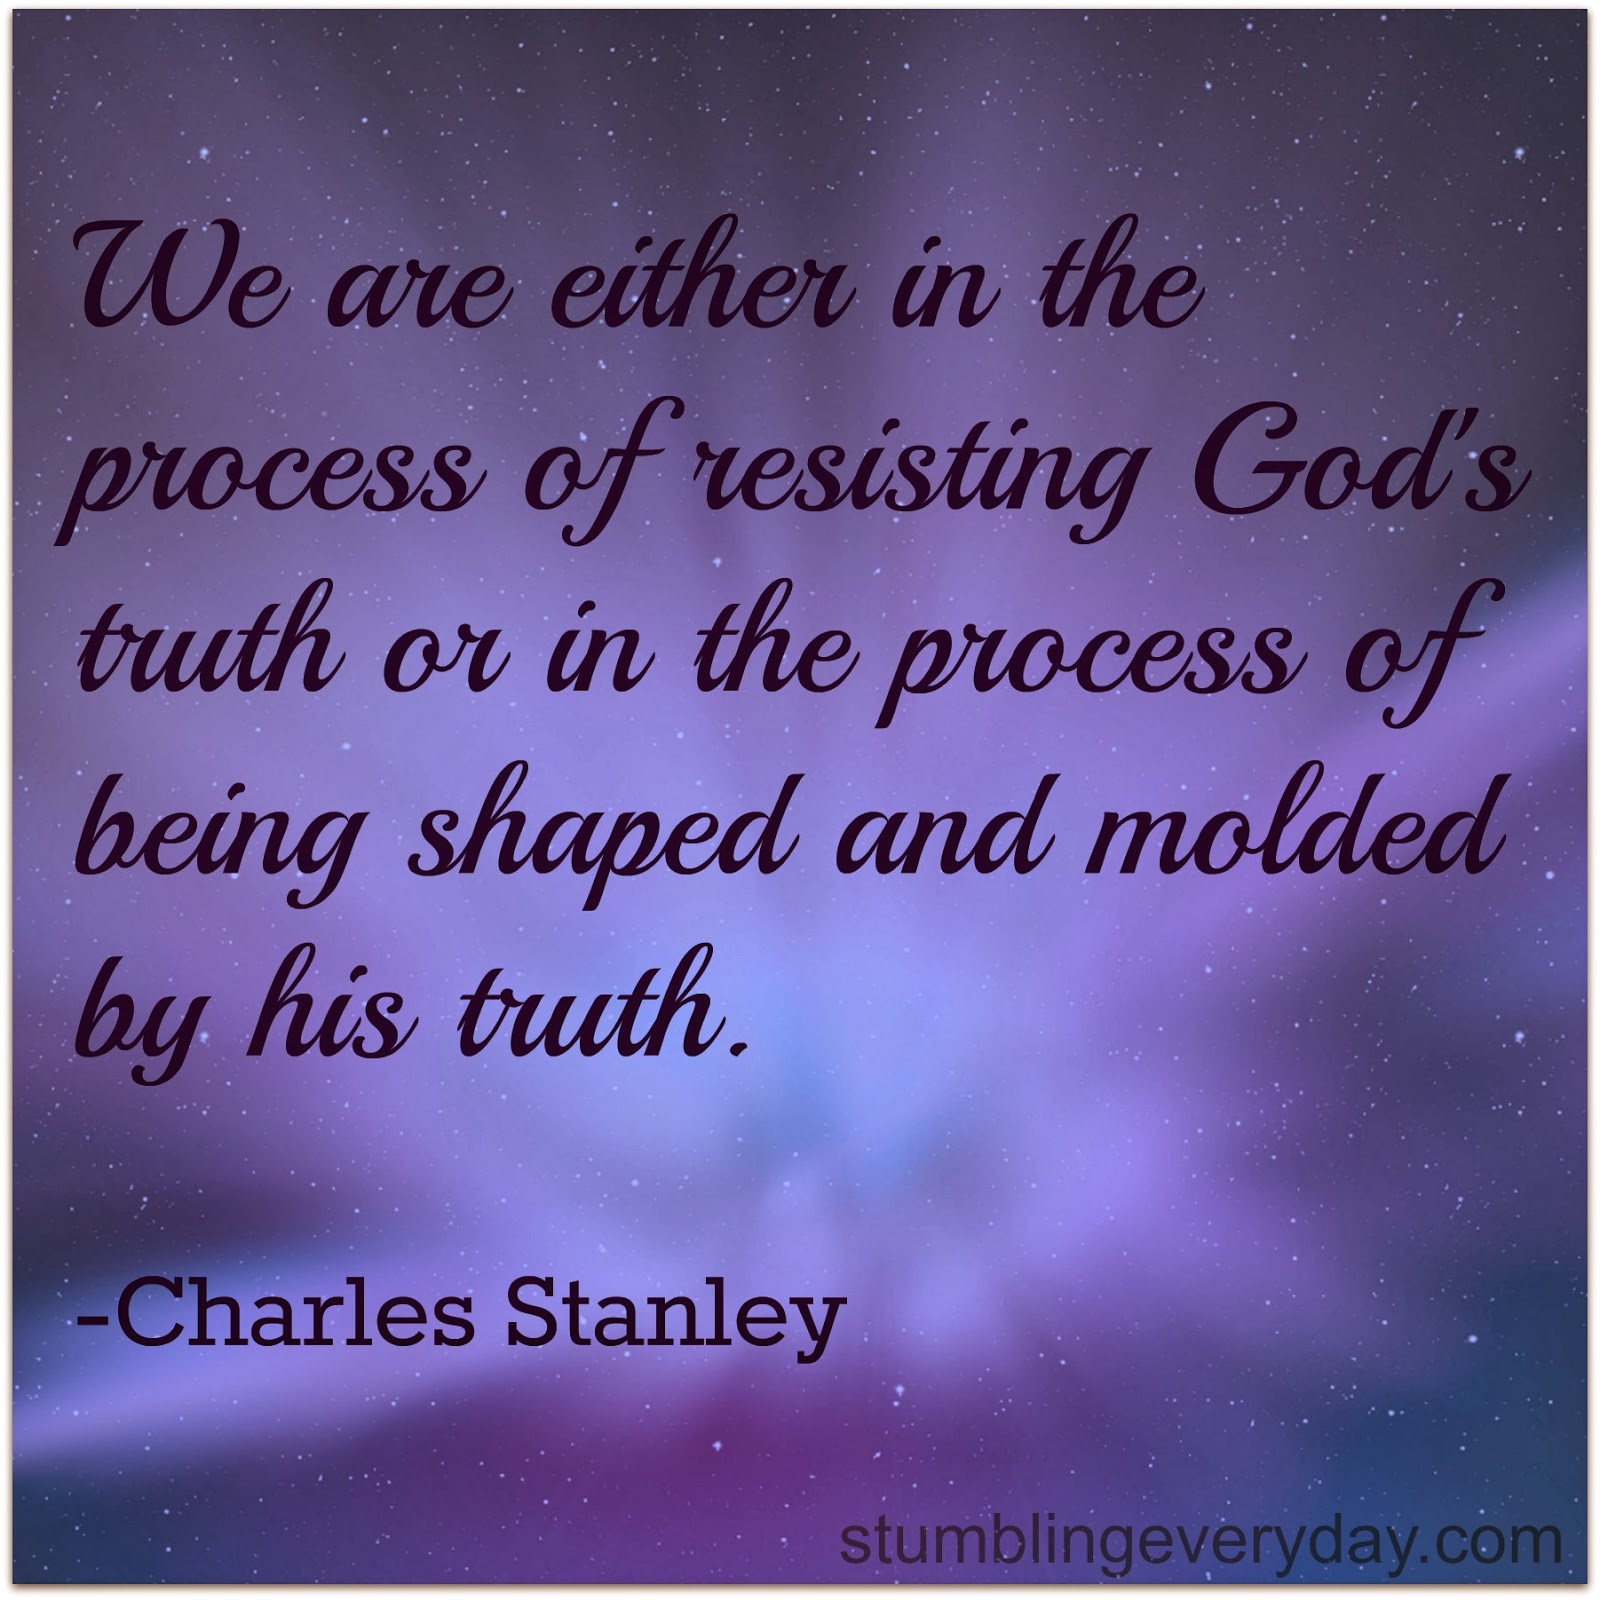 We are either in the process of resisting gods truth or in the process of being